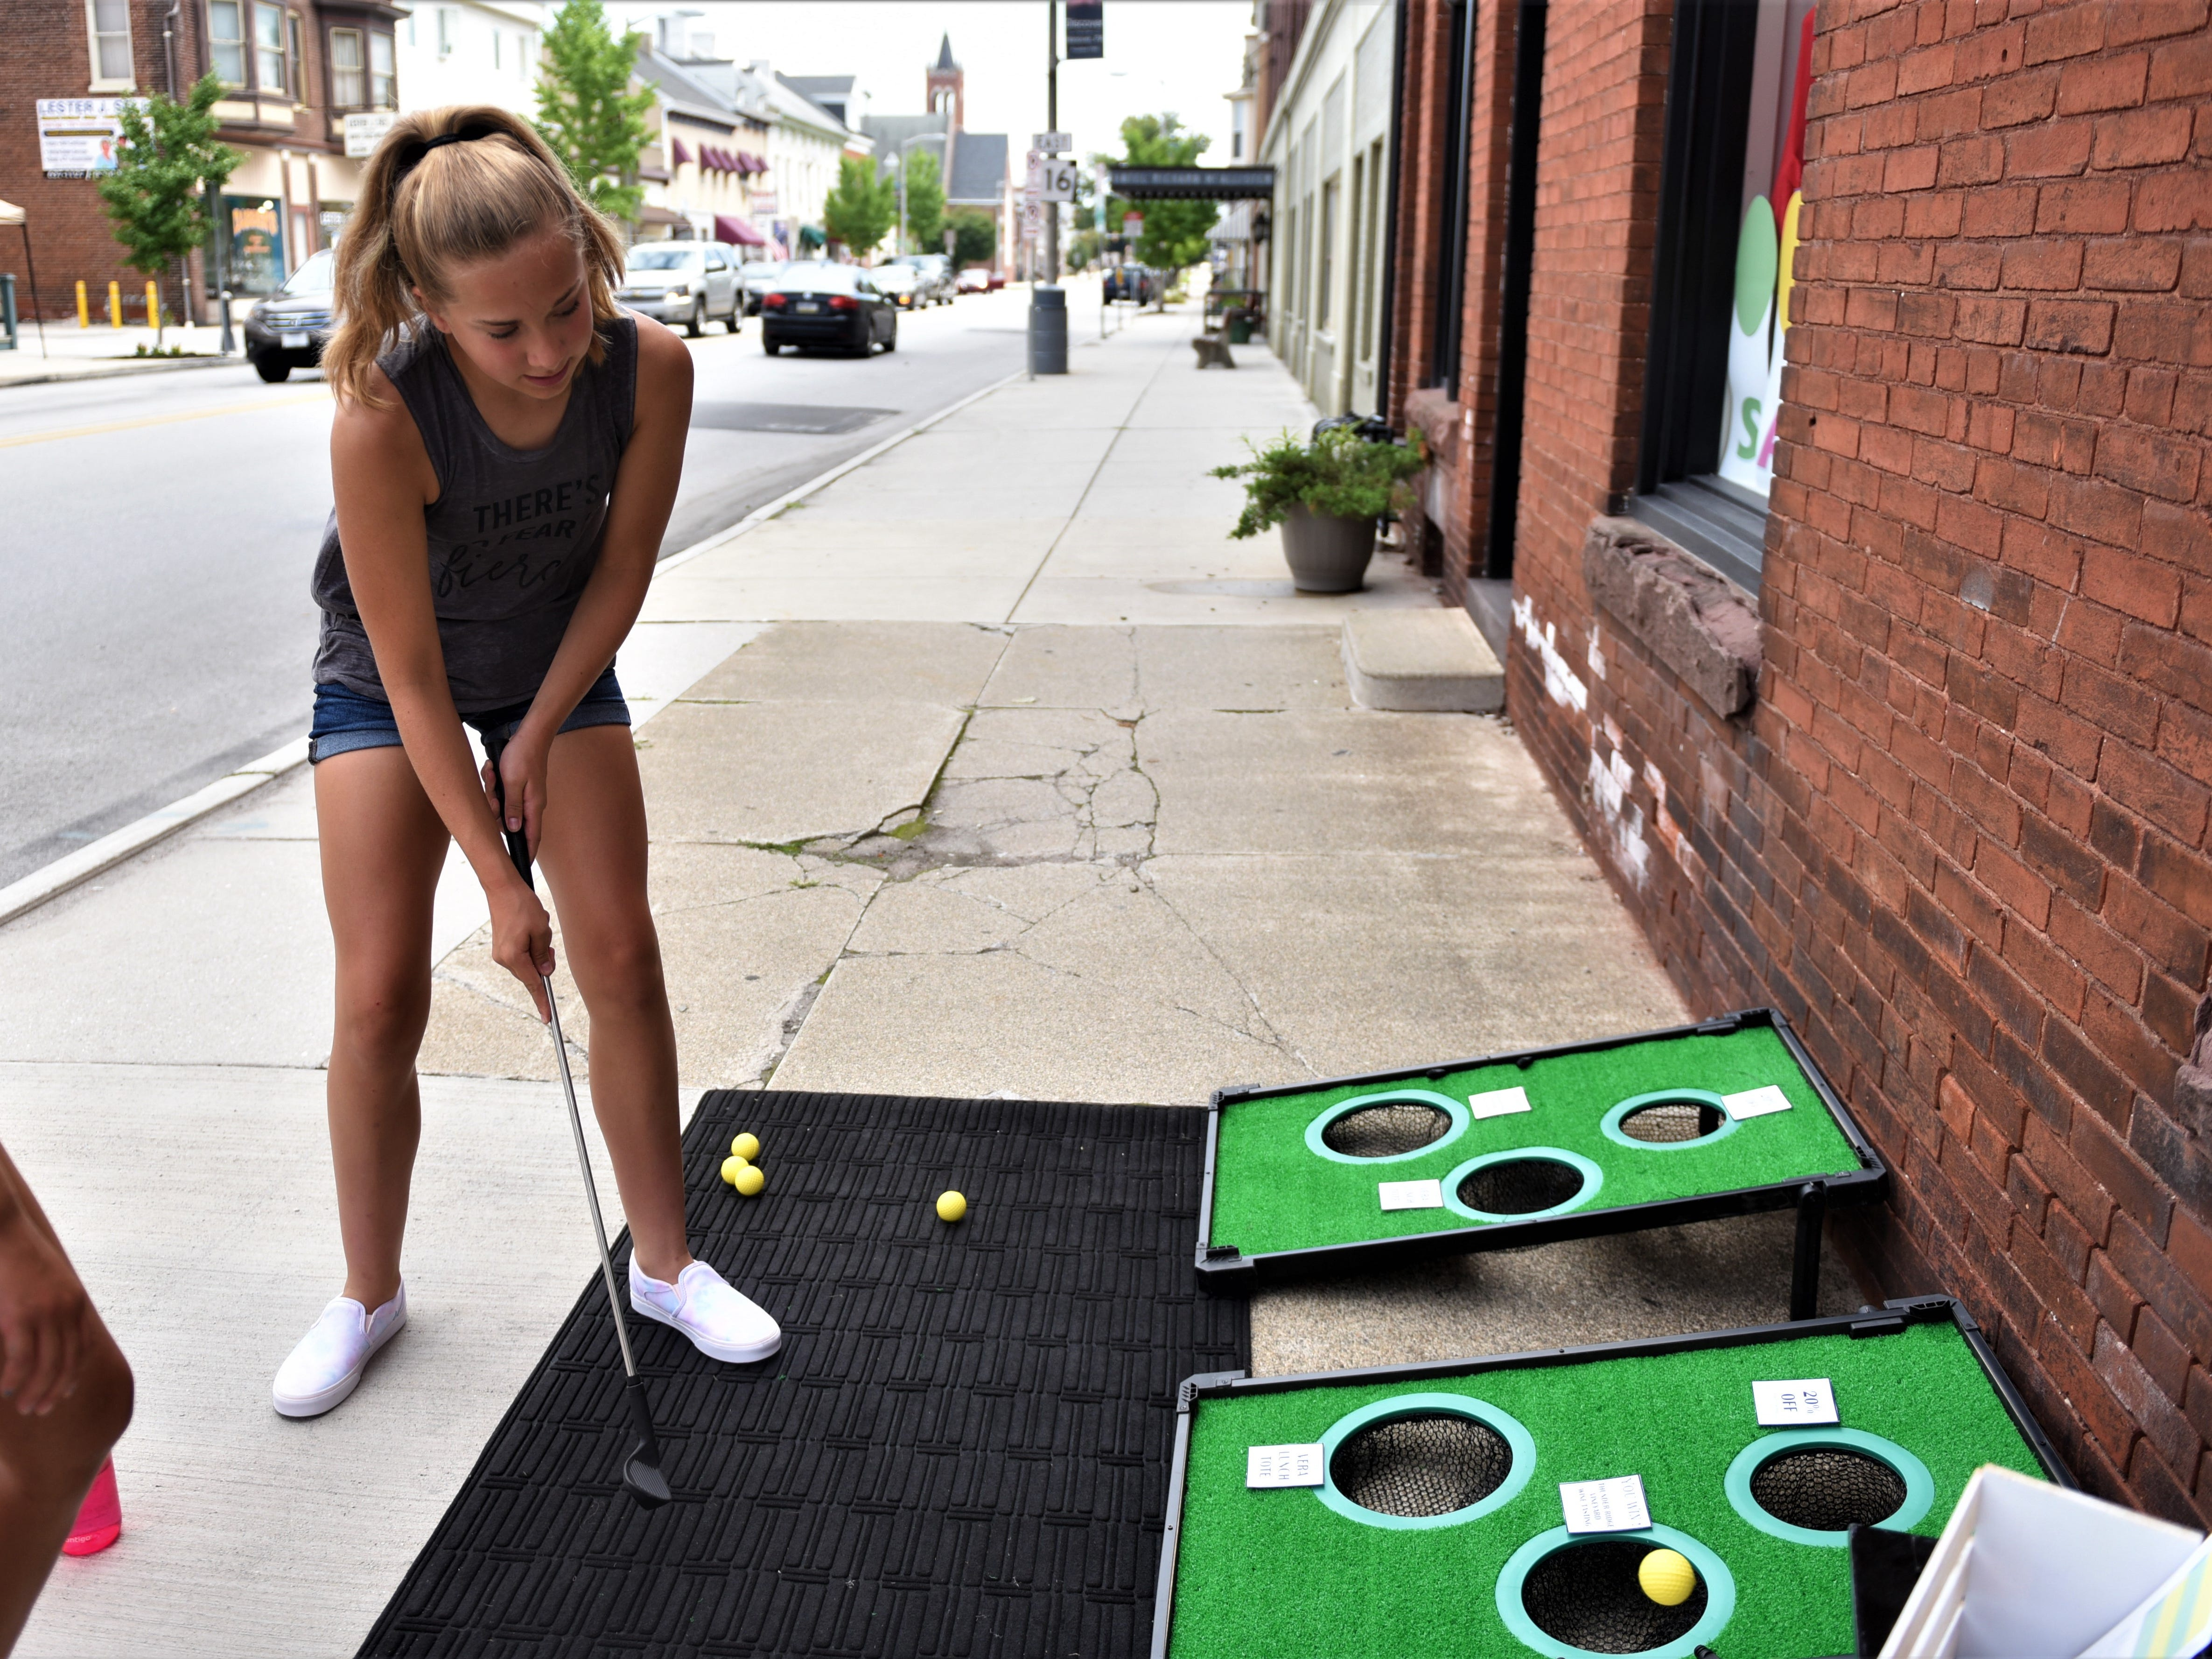 Reagan Wildasin, 13, gets a hole-in-one at the Treasures mini golf hole.